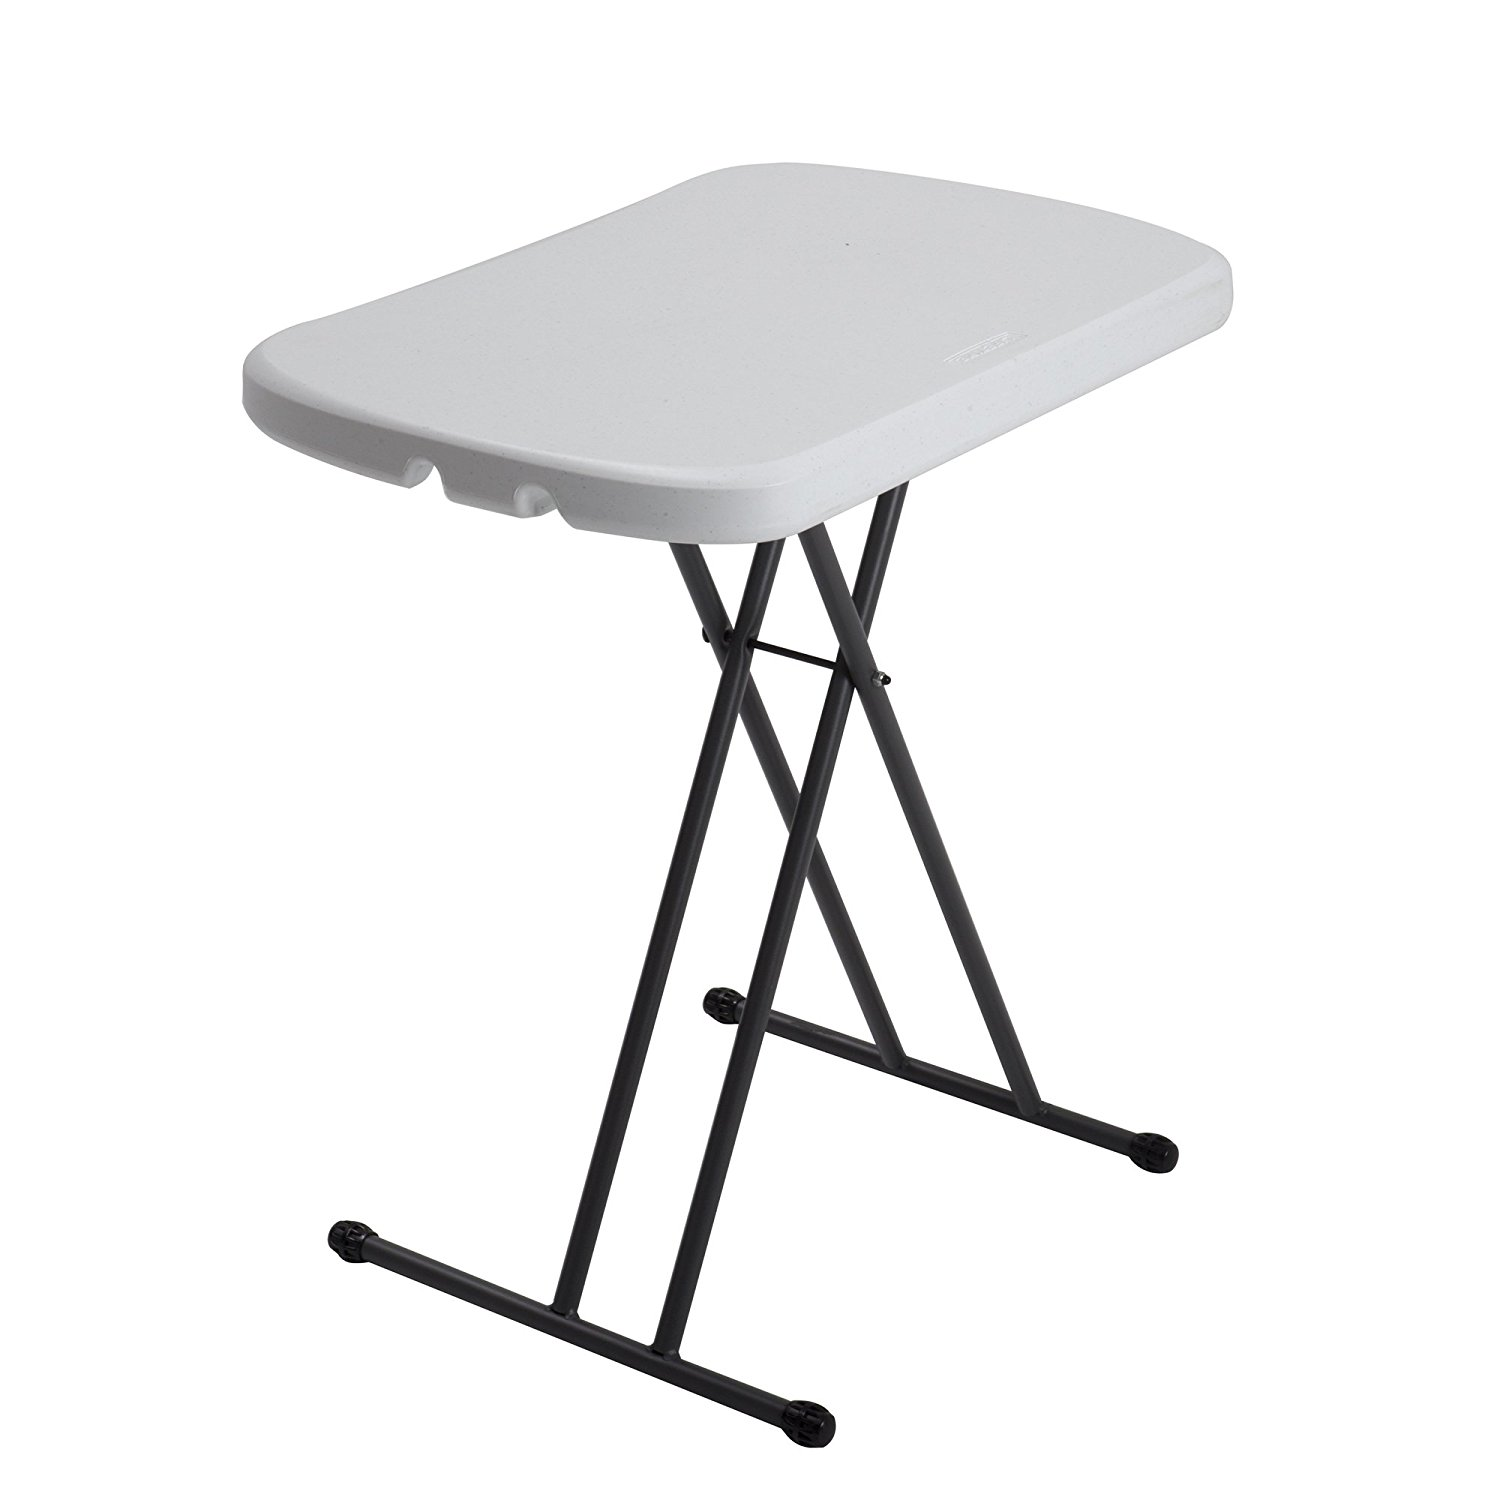 small plastic folding table amazon.com: lifetime 80251 height adjustable folding personal table, 26  inch, white granite: gyqtnsp